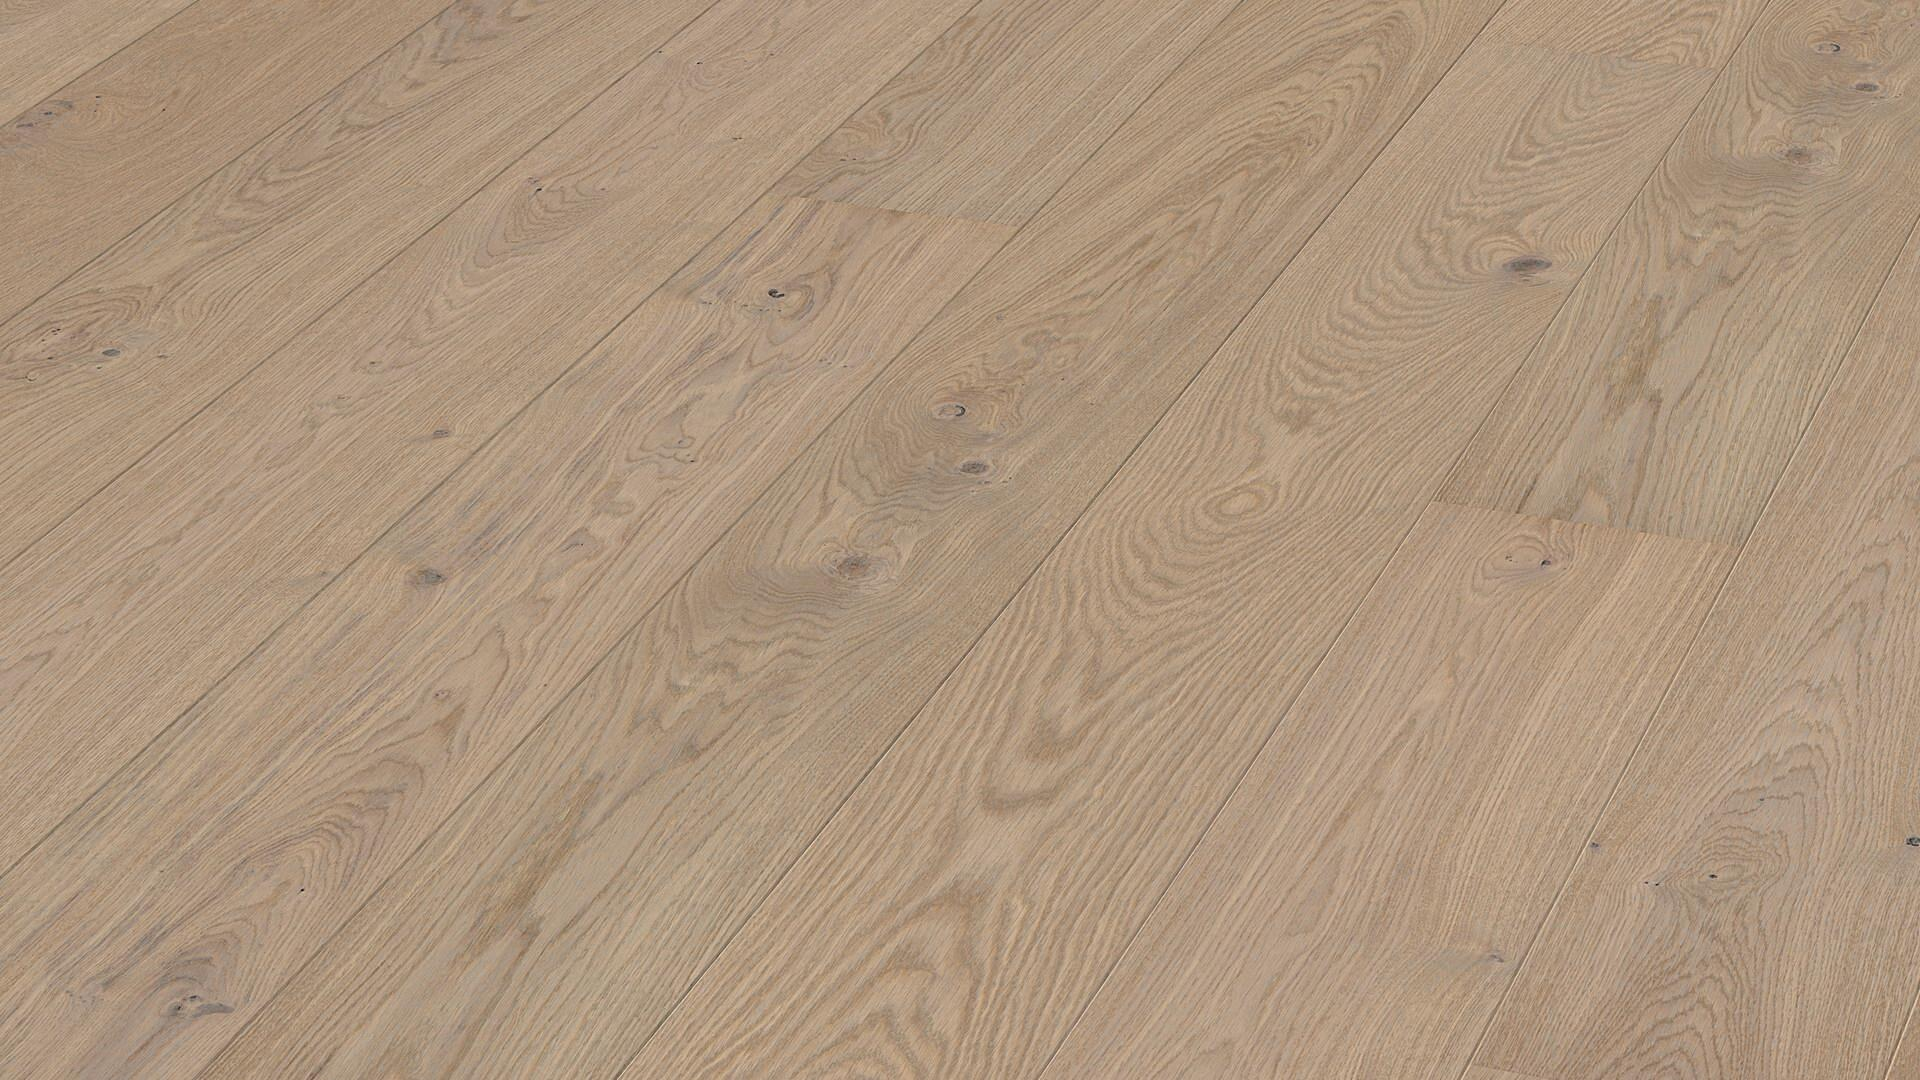 Parquet flooring MeisterParquet. longlife PD 400 Light grey oak lively 8548